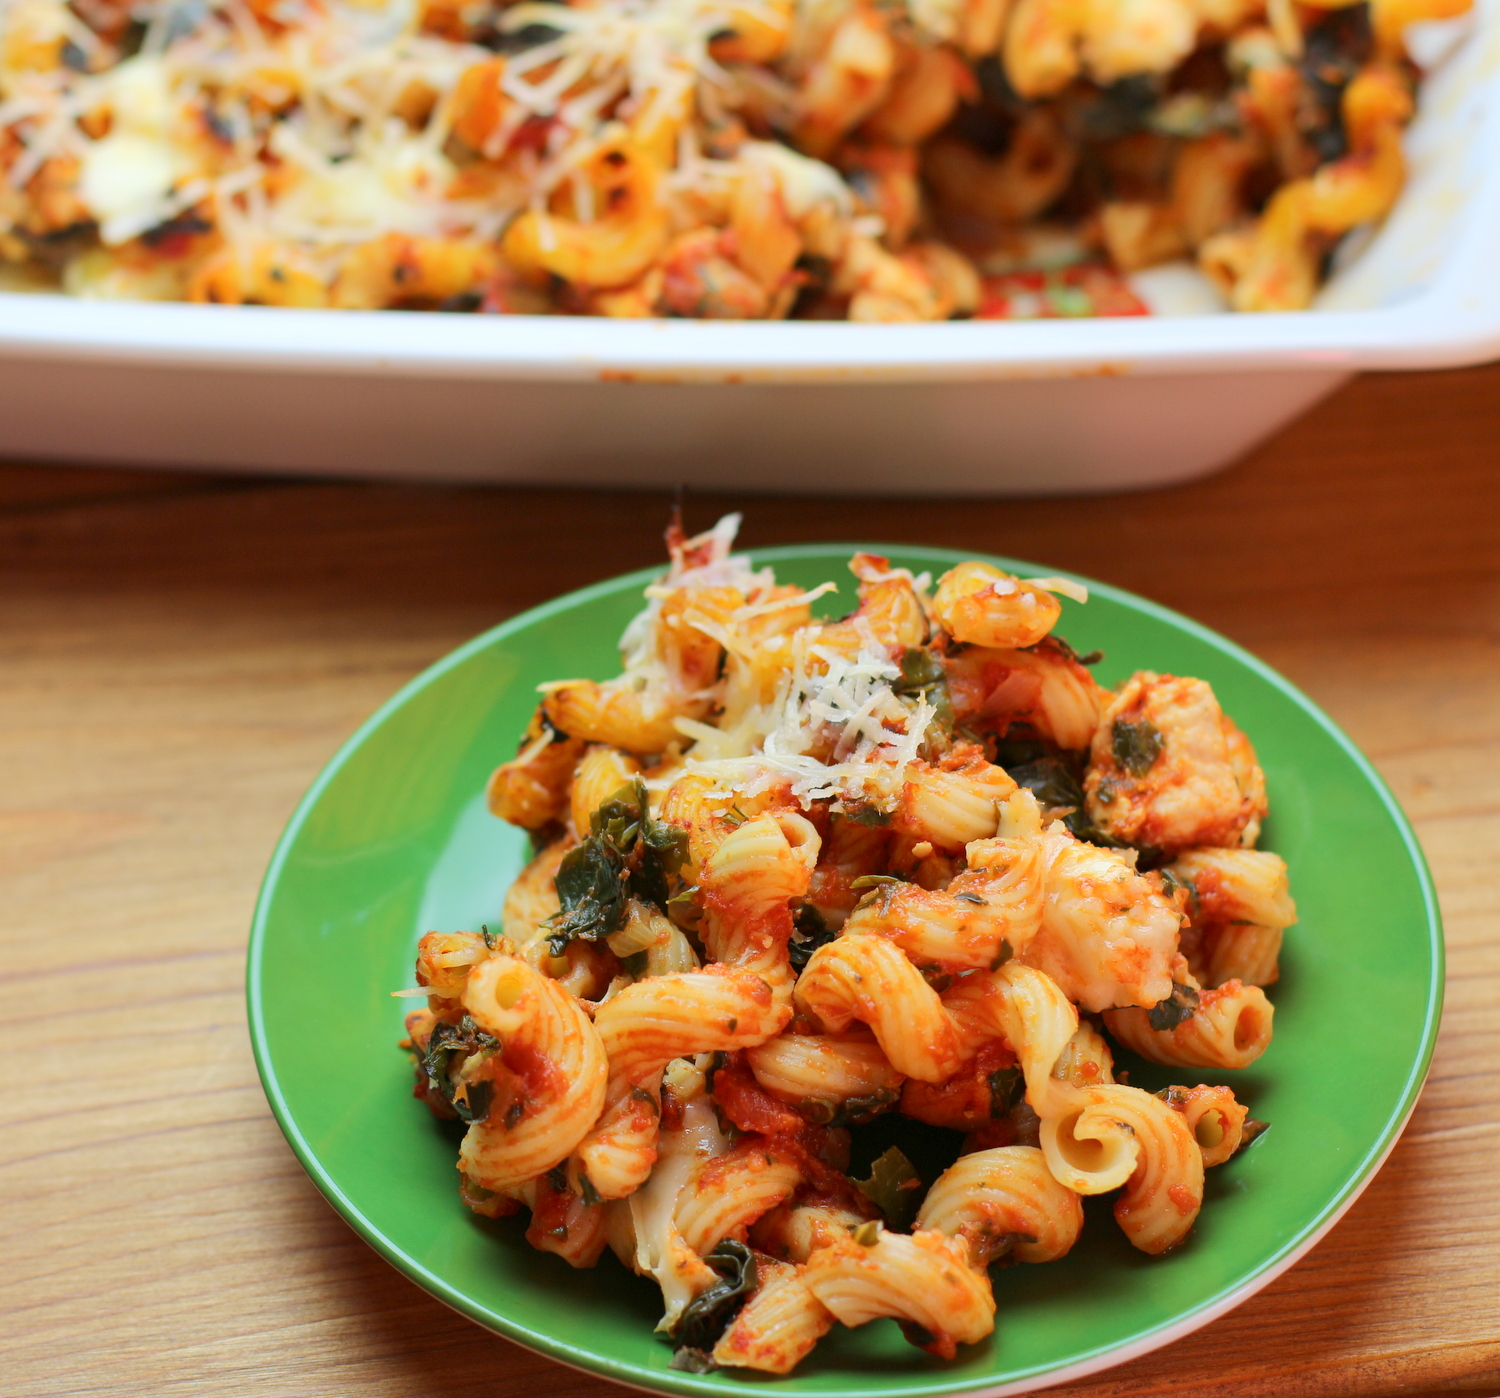 Italian Chicken, Pasta and Tomato Bake